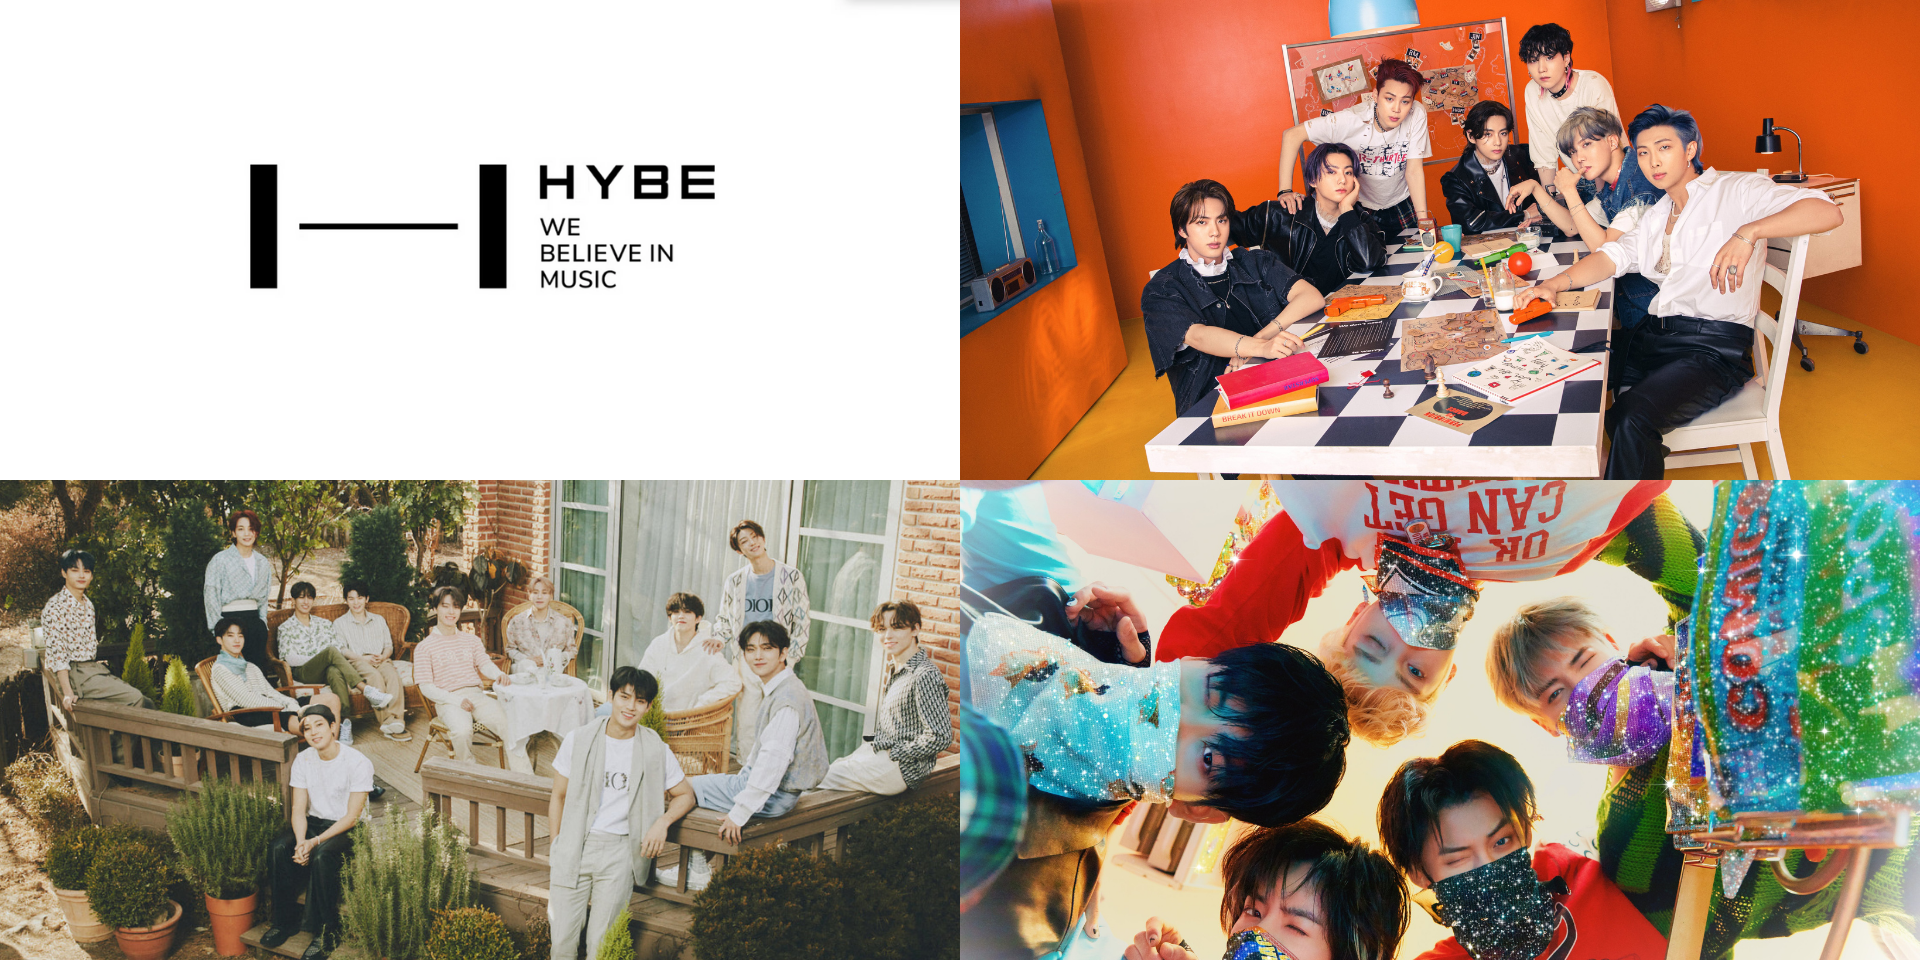 HYBE earns $244 million in Q2 - driven by releases from BTS, SEVENTEEN, TOMORROW X TOGETHER, plus BTS' MUSTER SOWOOZOO ticket sales